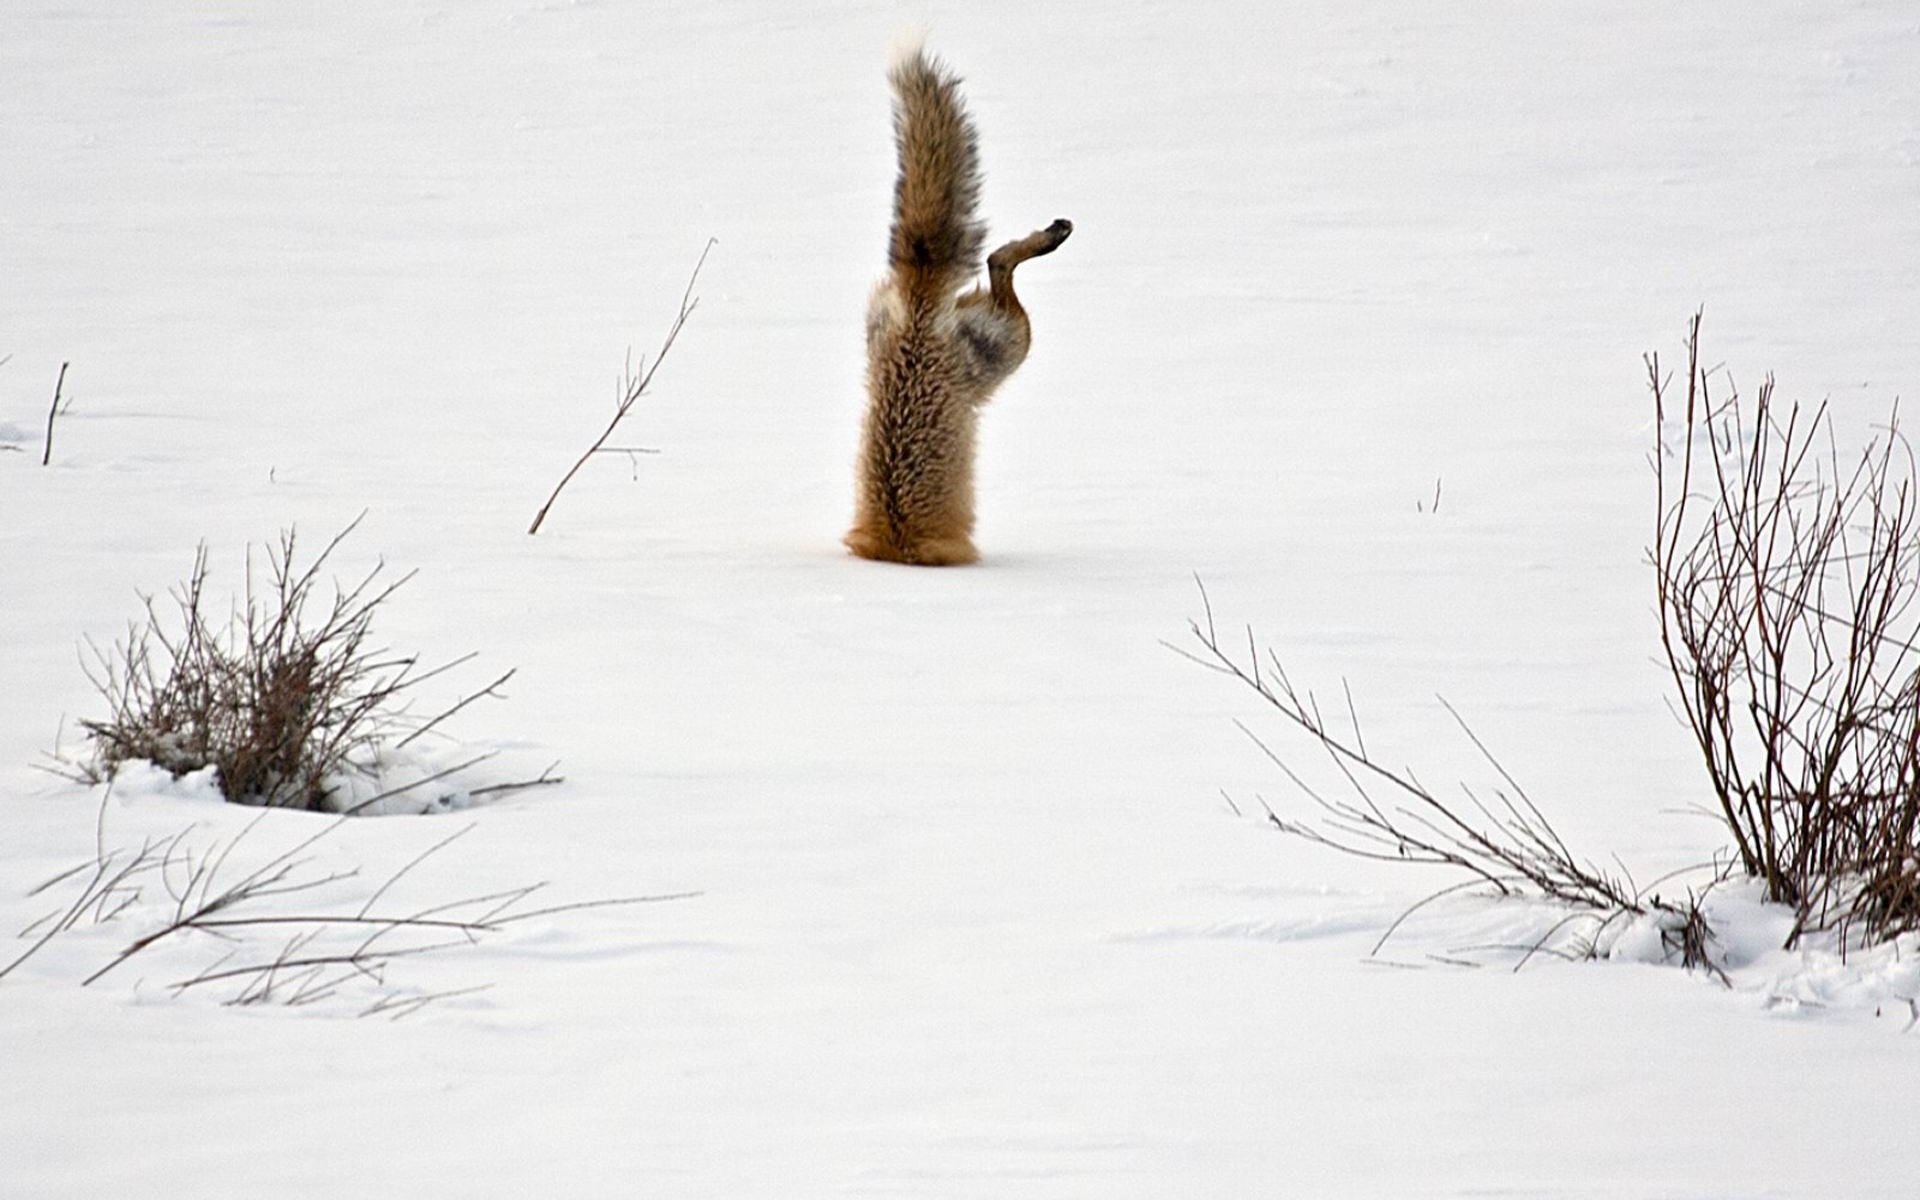 Red Fox Catching Mouse Under Snow National Geographic